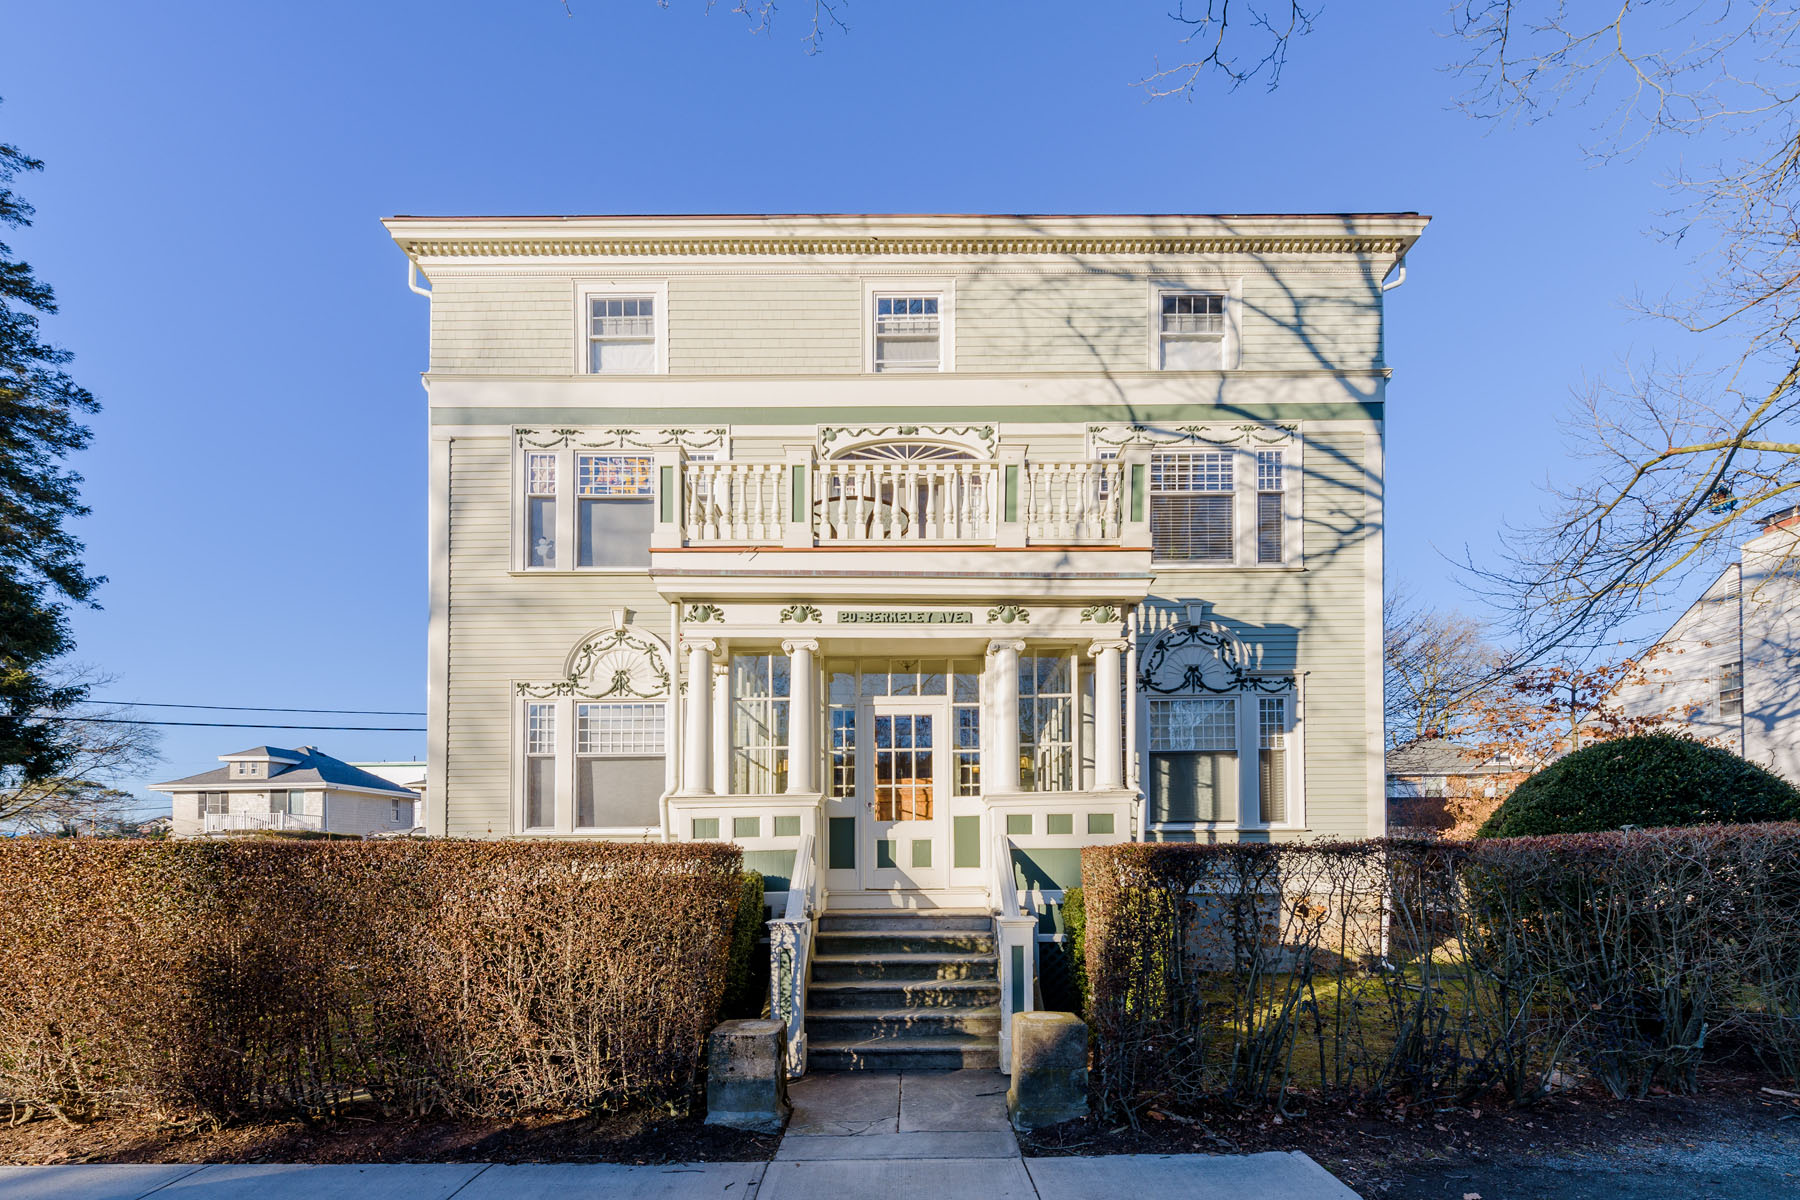 Condominium for Sale at 20 Berkeley Av, #4, Newport, RI 20 Berkeley Av 4 Newport, Rhode Island, 02840 United States